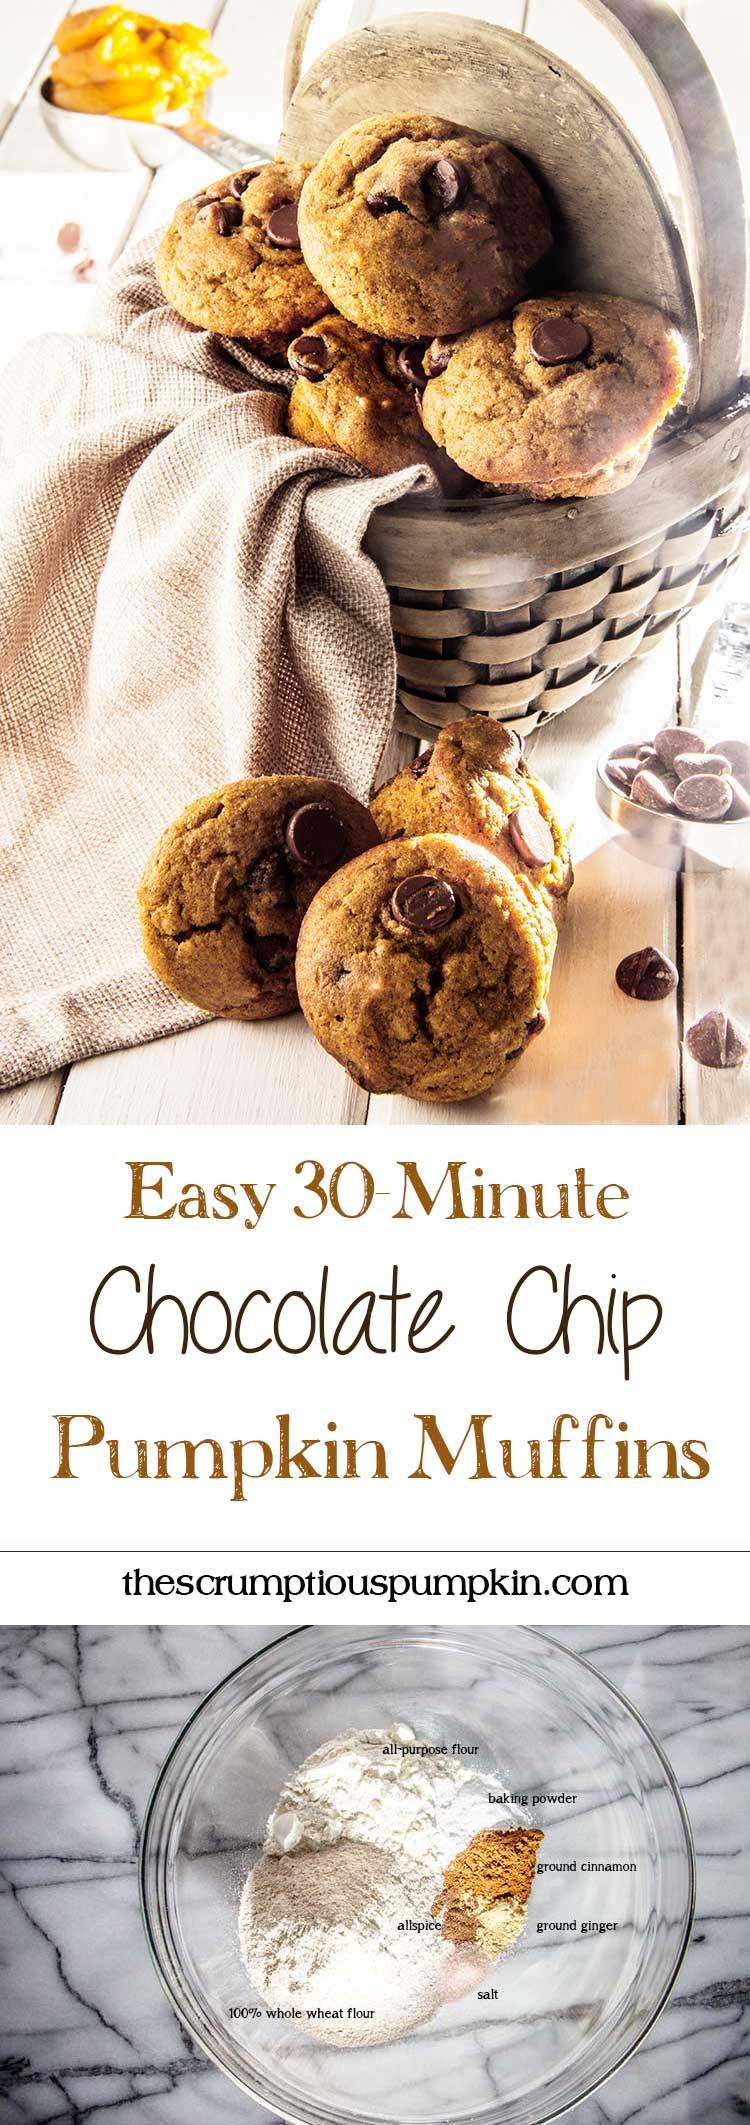 easy-30-minute-chocolate-chip-pumpkin-muffins